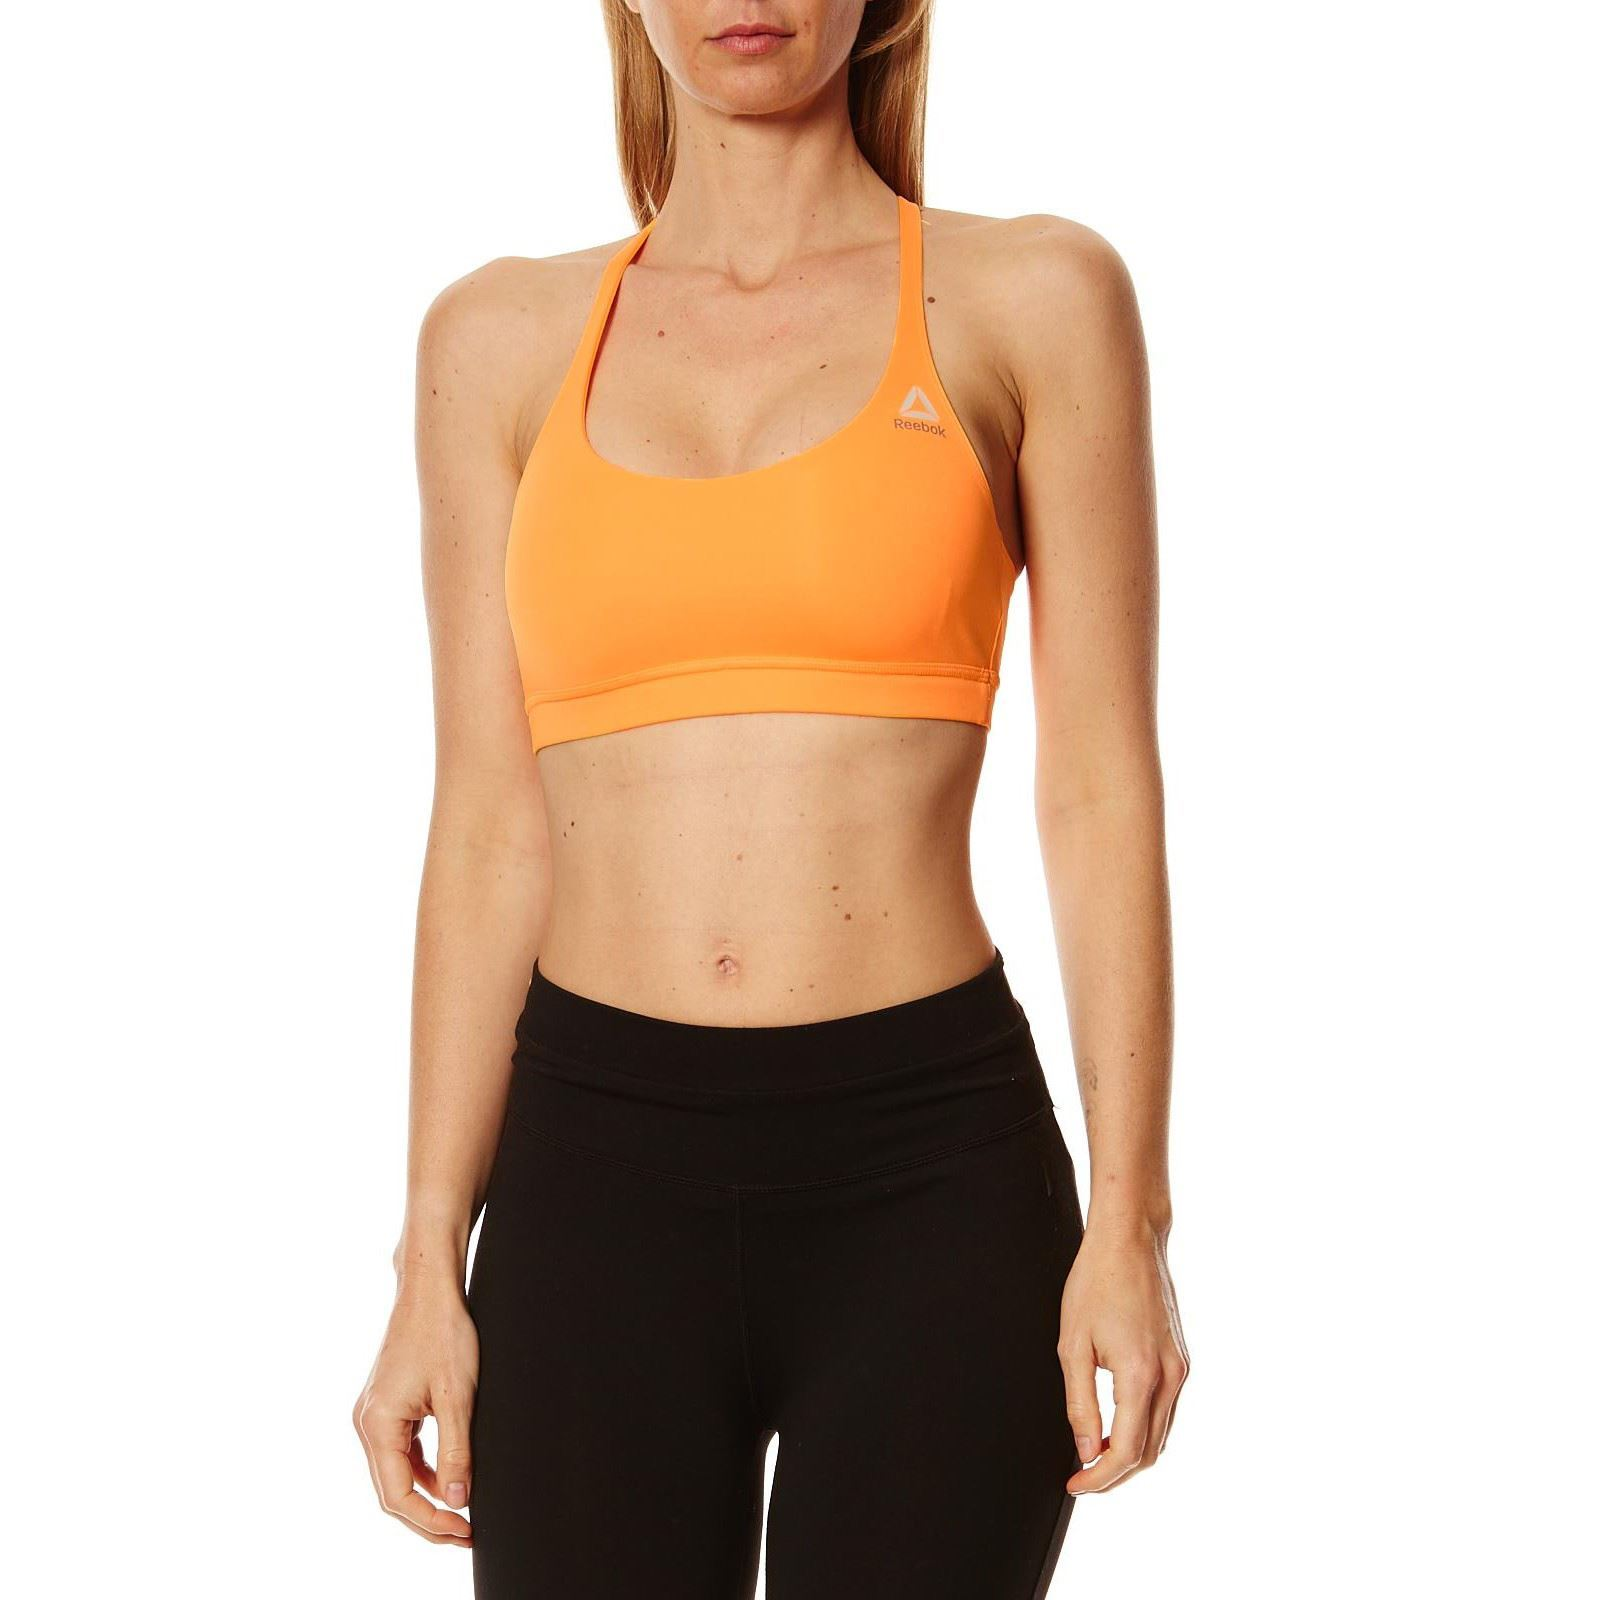 Reebok-Performance-Brassiere-de-sport-orange